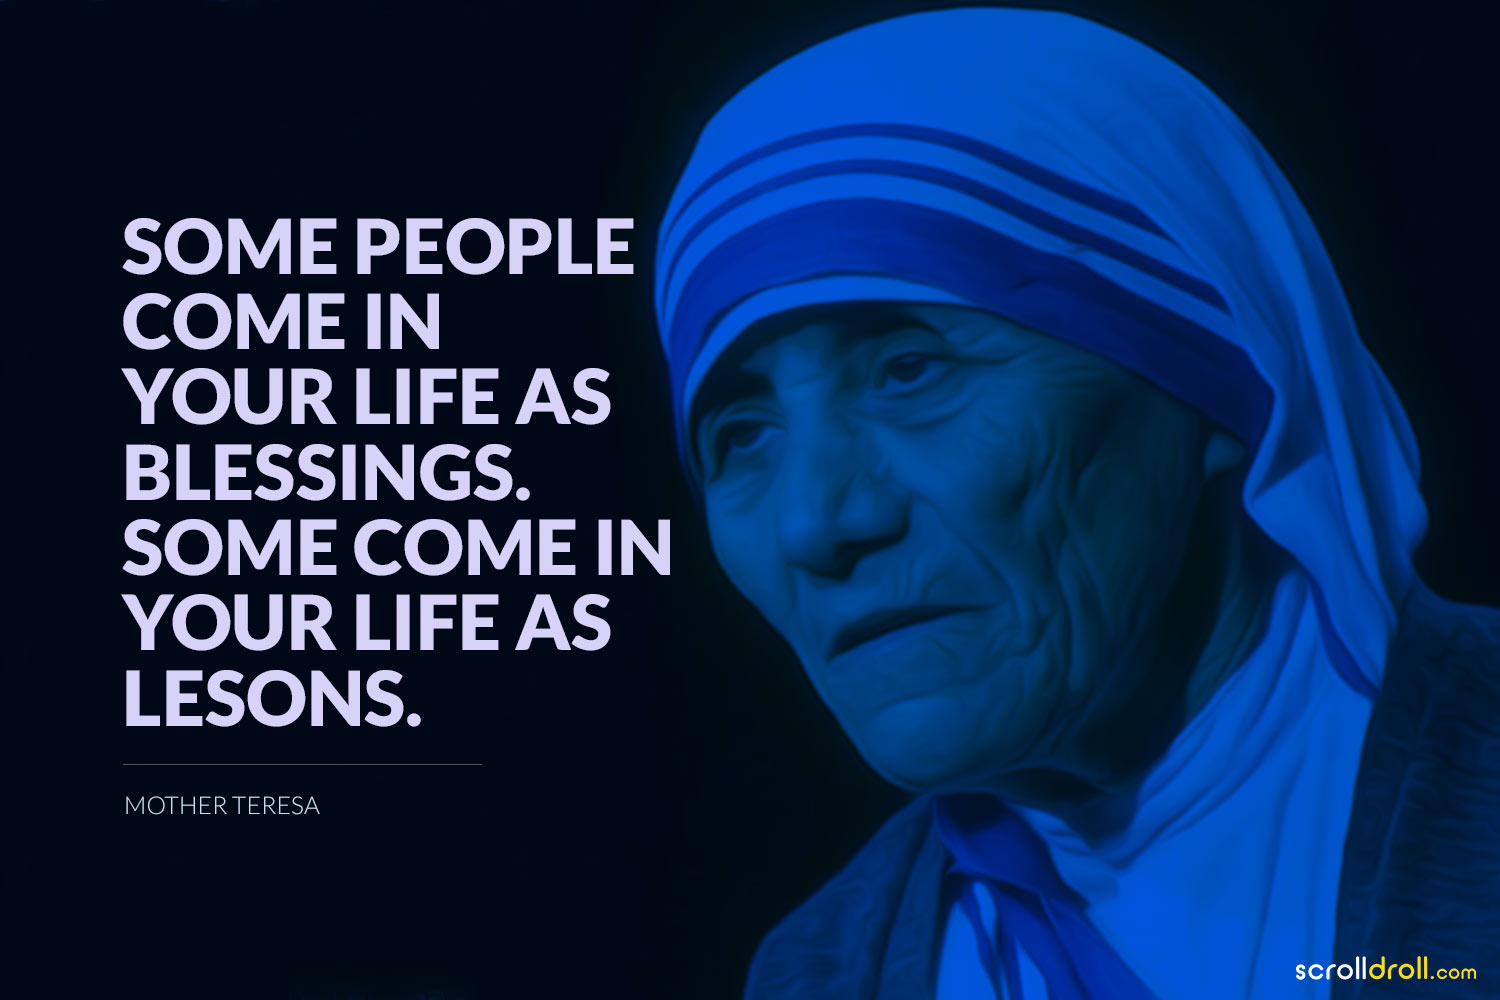 10 Most Inspirational Mother Teresa Quotes on Love, Life & Happiness